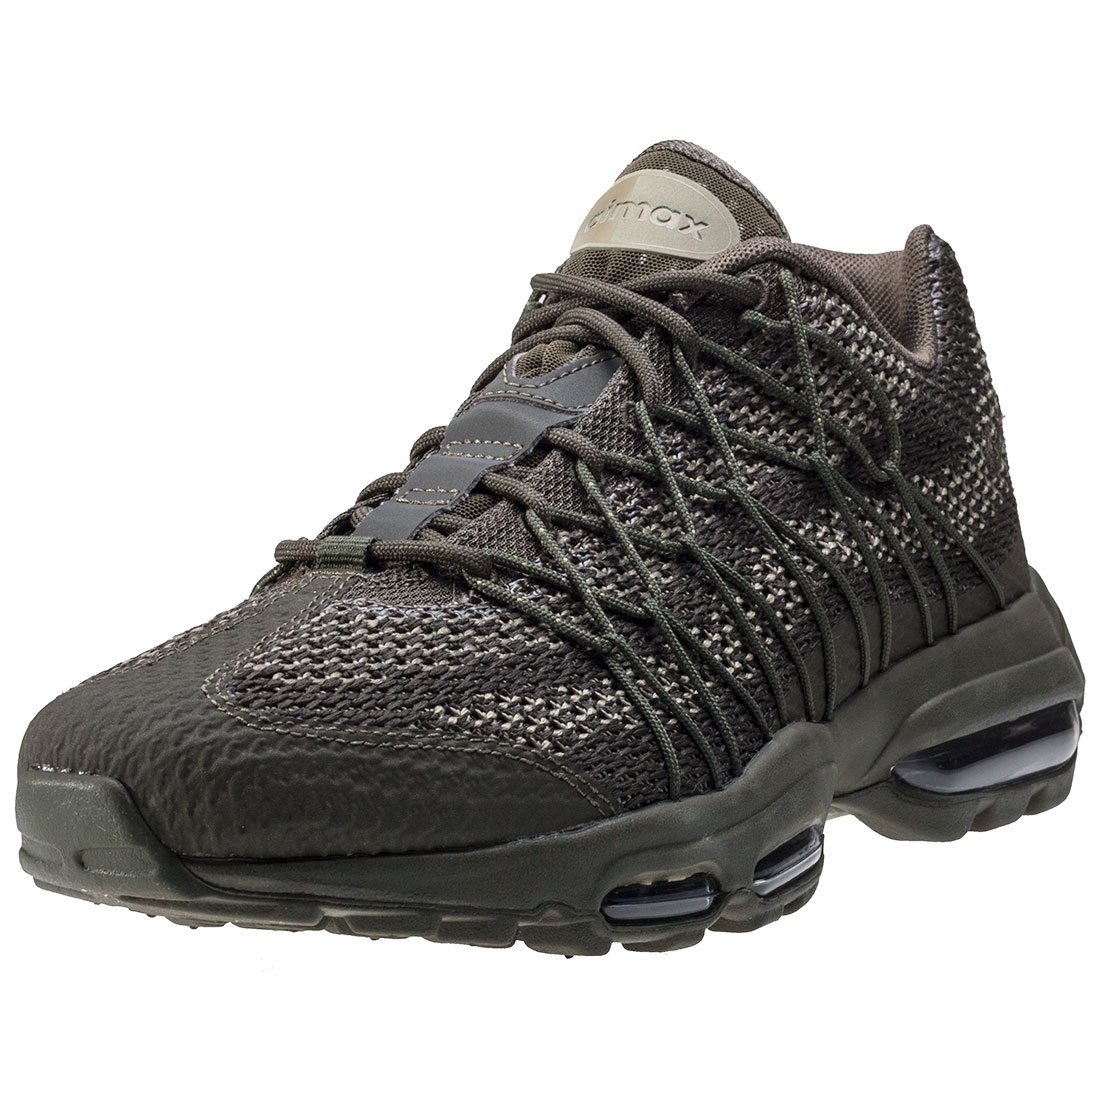 c00c7ce0a9 Nike Air Max 95 Ultra Jacquard Mens Trainers Khaki - 8.5 UK: Amazon.co.uk:  Shoes & Bags